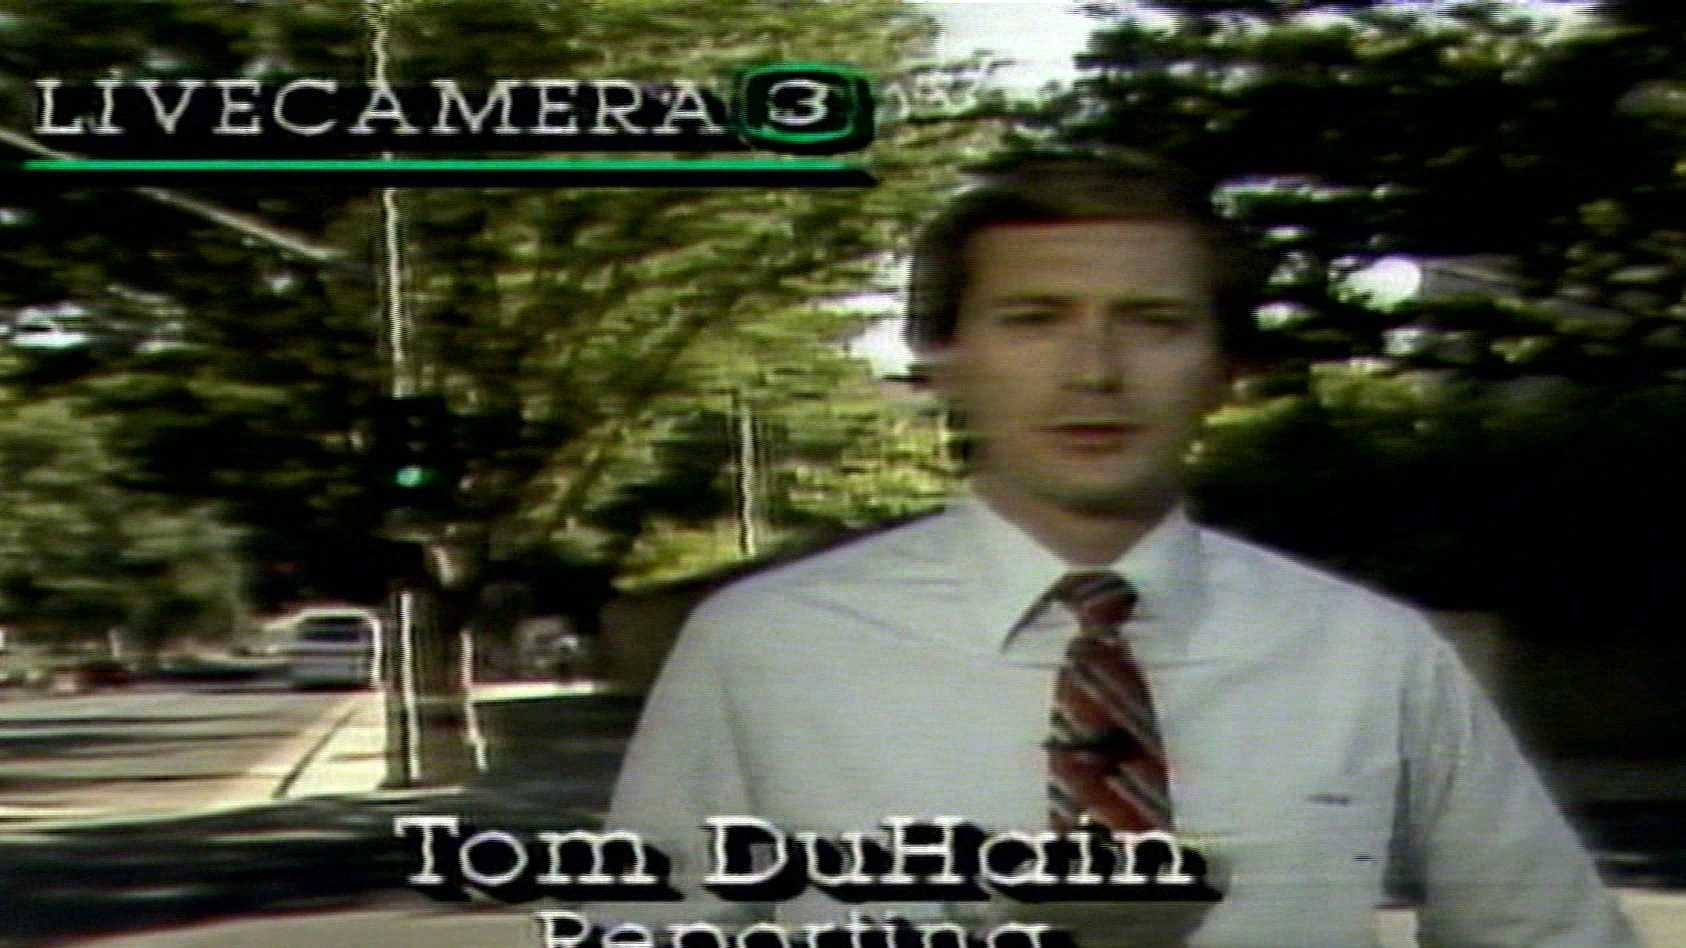 When Tom arrived at KCRA 3, he was an 18-year-old who was fresh out of high school. At that time, Lyndon B. Johnson was still president. In just a few short months, Tom was on TV.